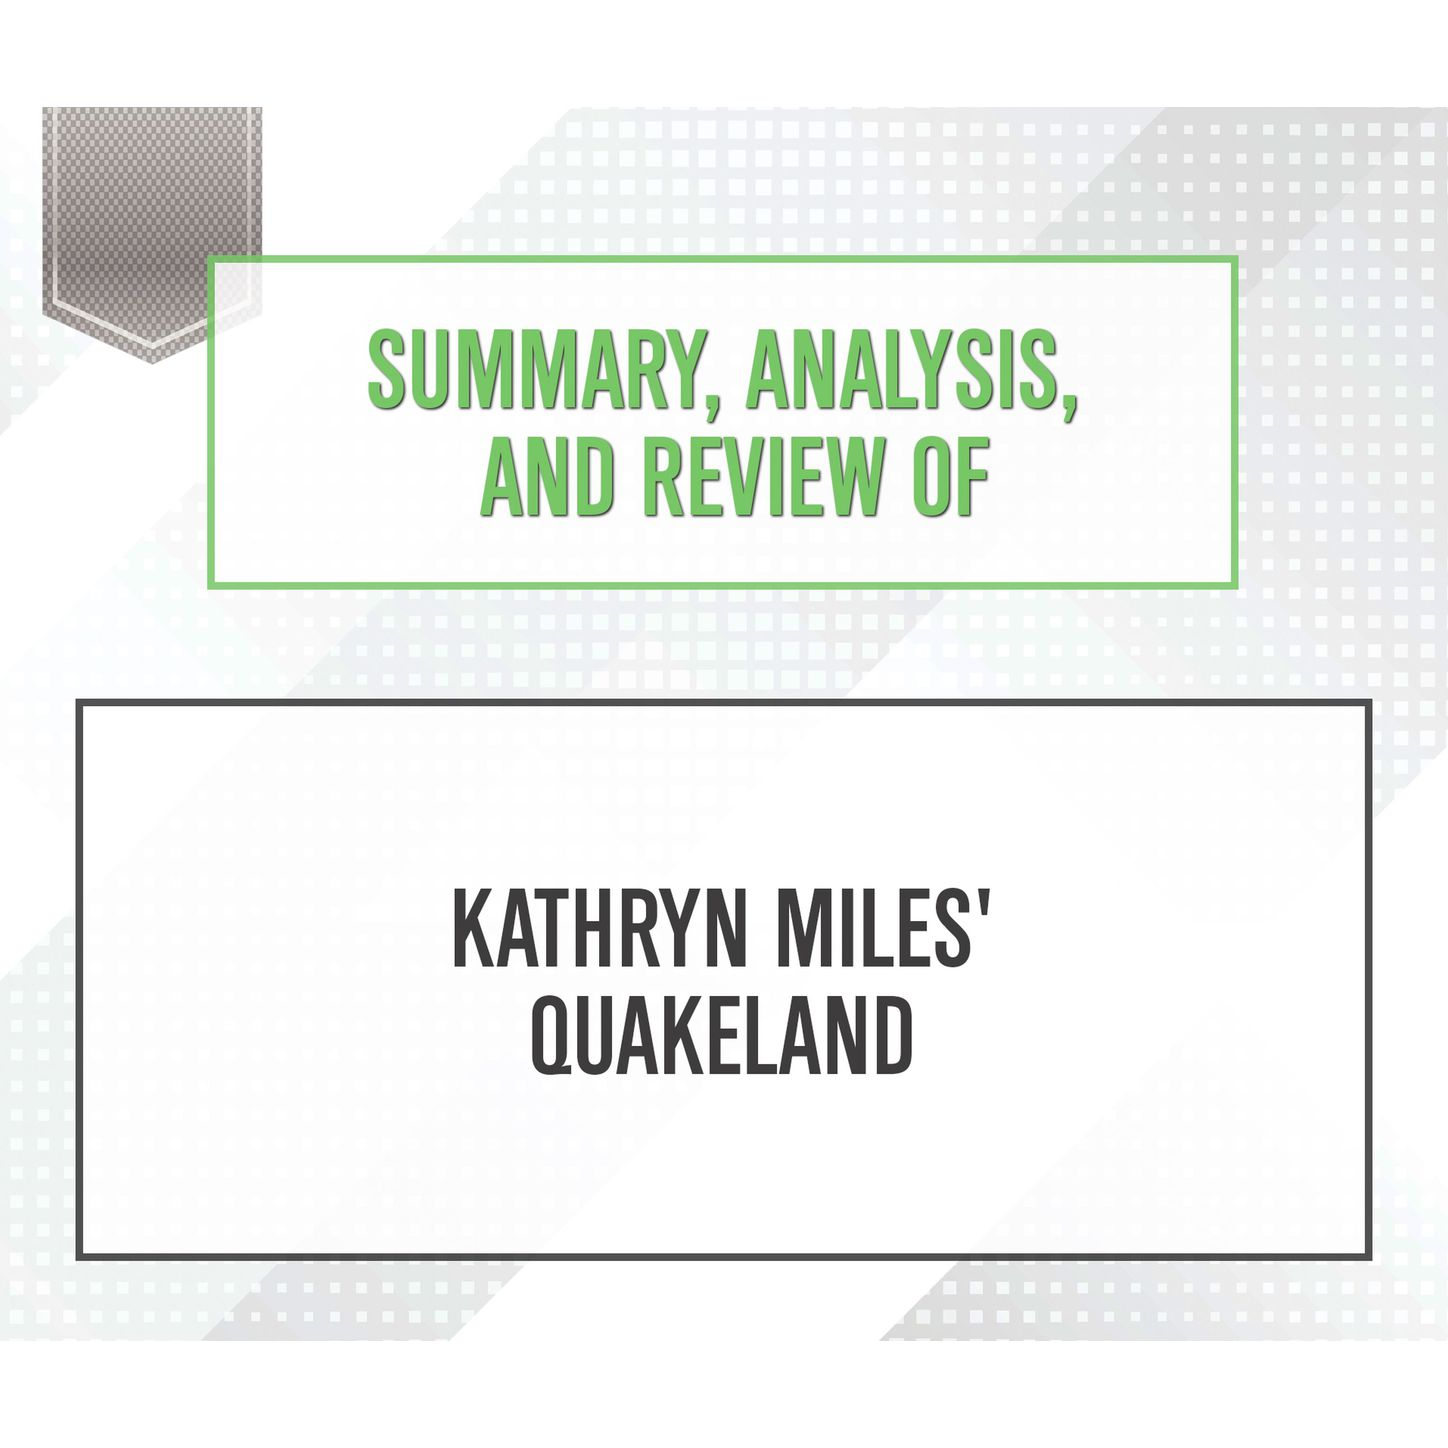 Summary, Analysis, and Review of Kathryn Miles\' Quakeland (Unabridged)